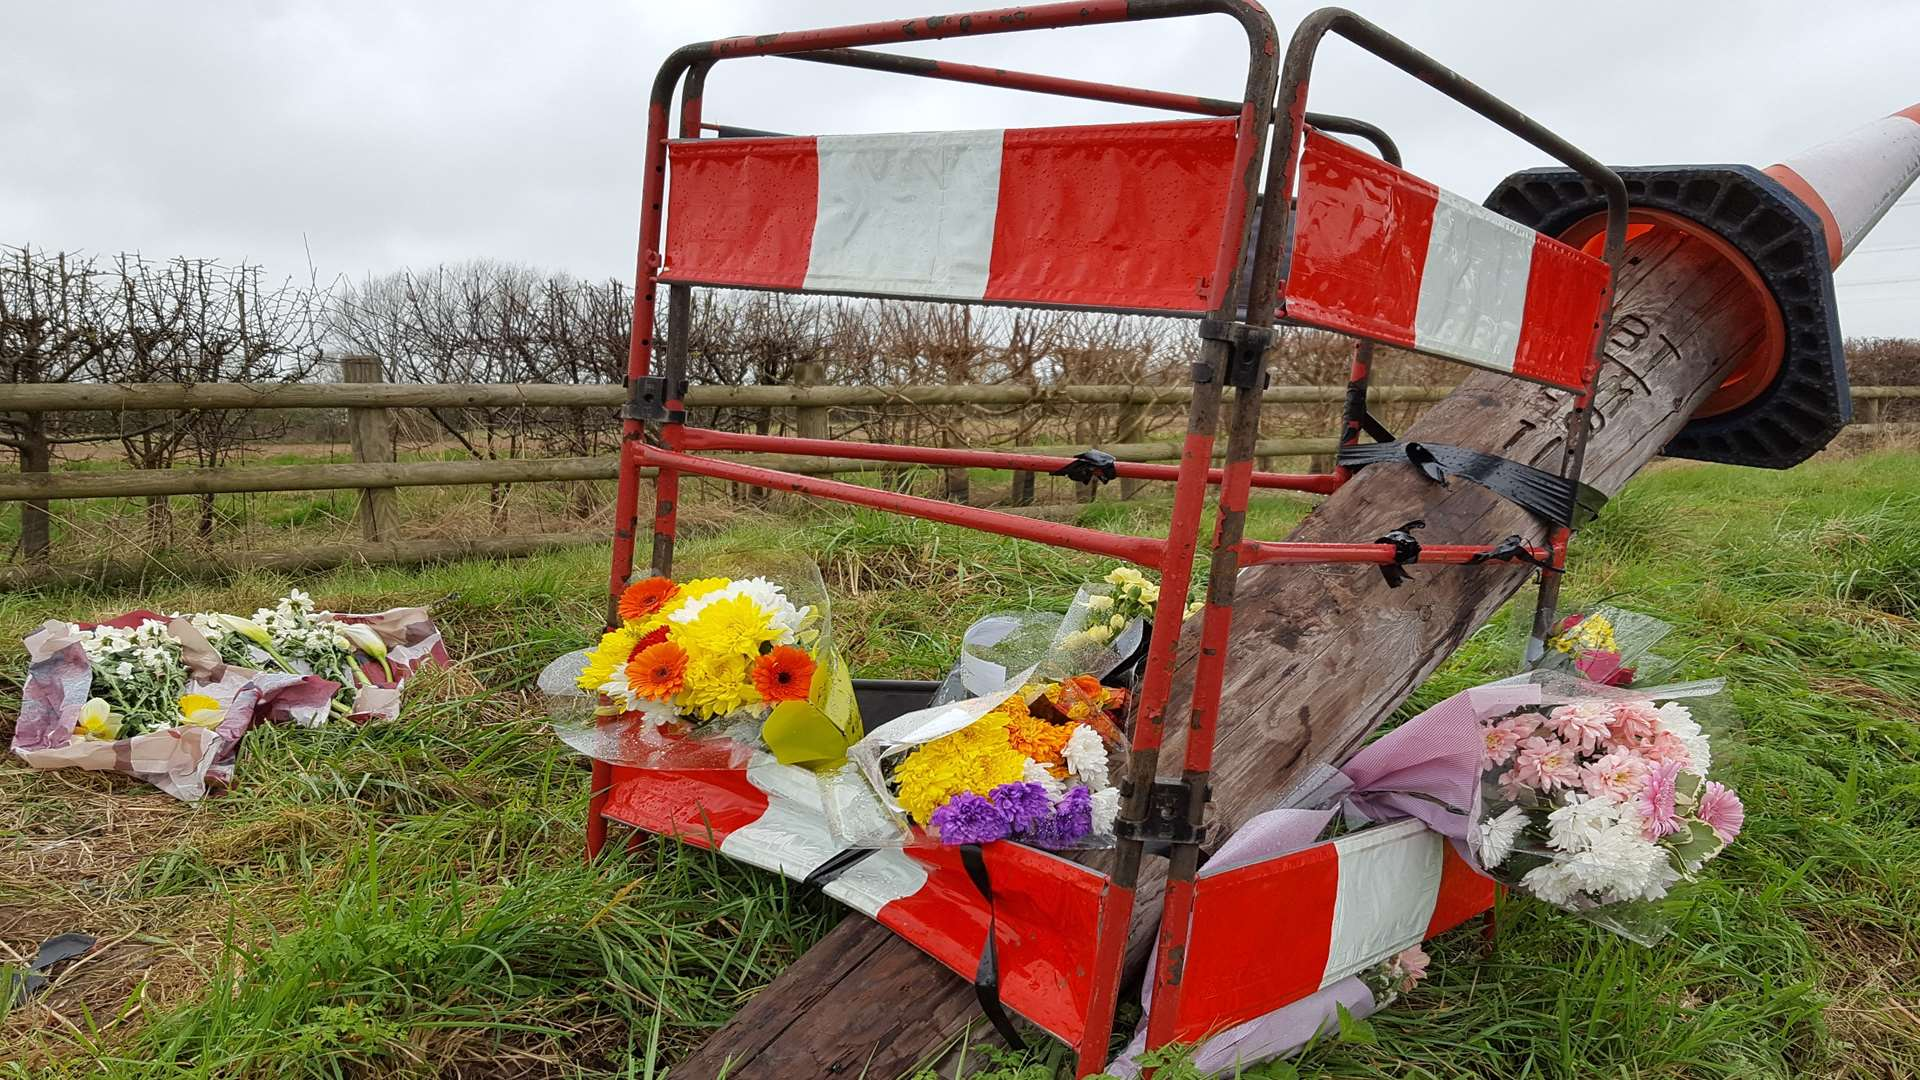 Floral tributes have been left at the site where Leanna died